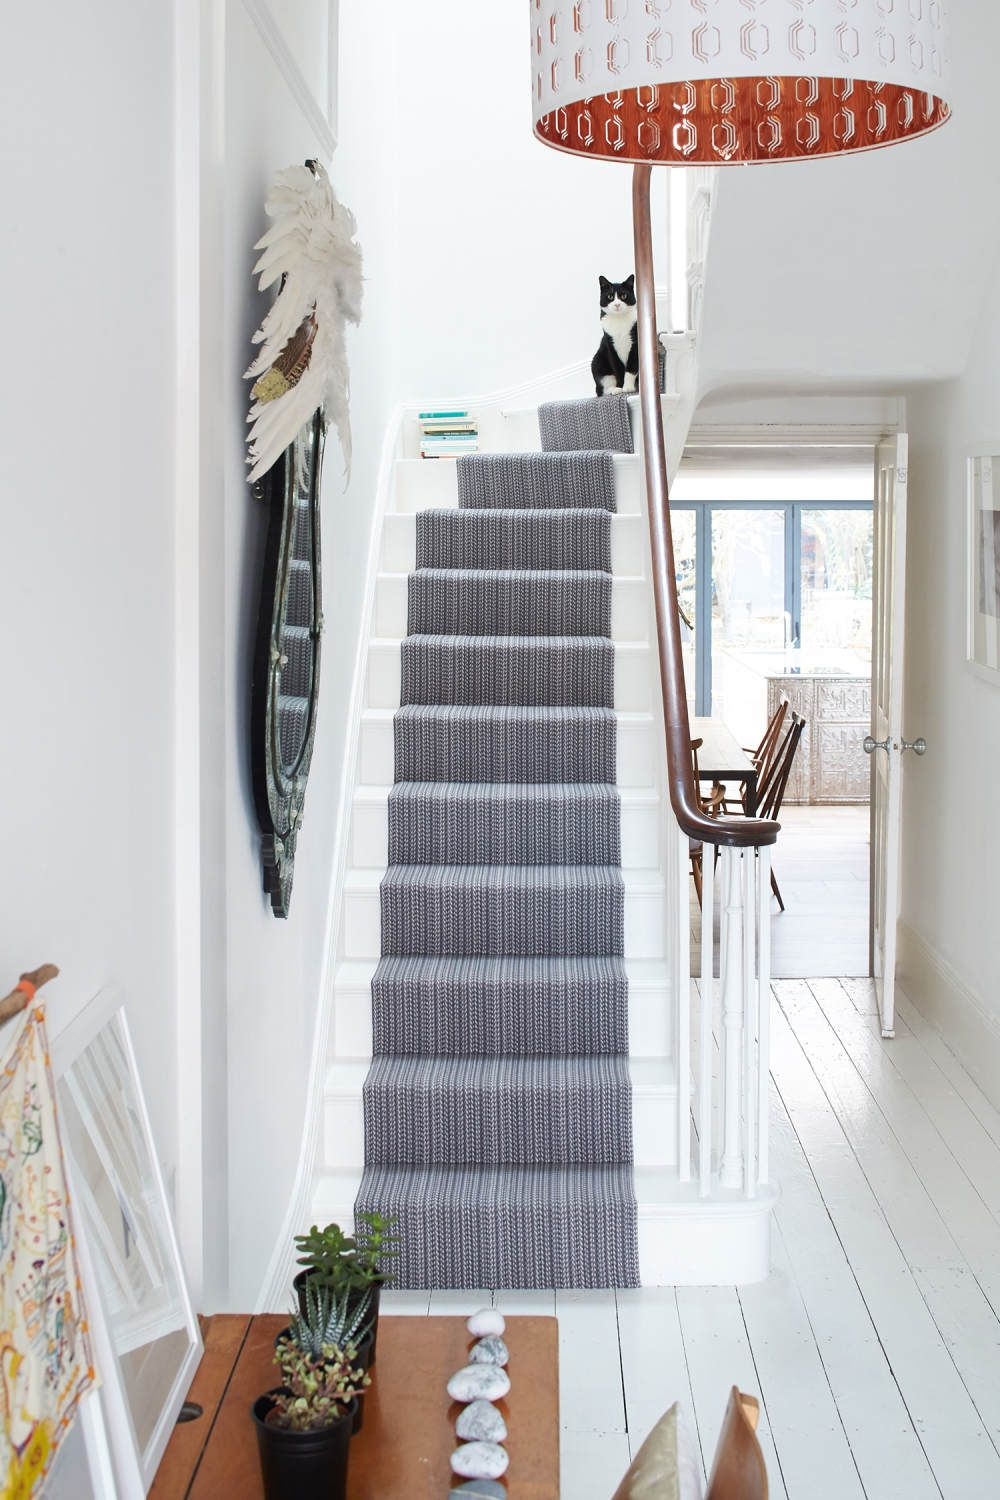 Best Roger Oates Design Runners And Rugs Interior Design 400 x 300